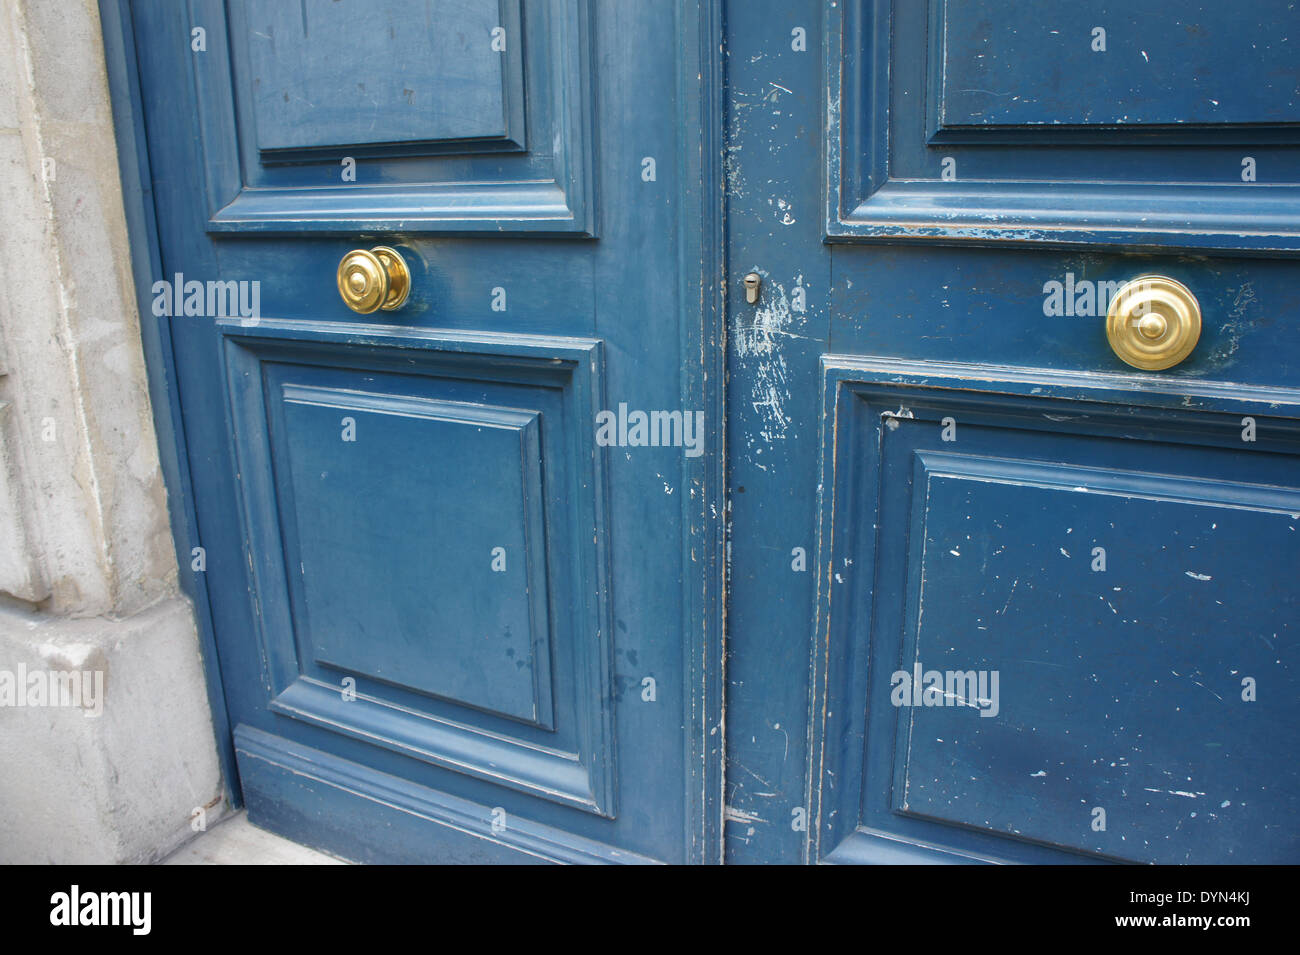 French doors with blue paint and center gold door knobs stock french doors with blue paint and center gold door knobs rubansaba